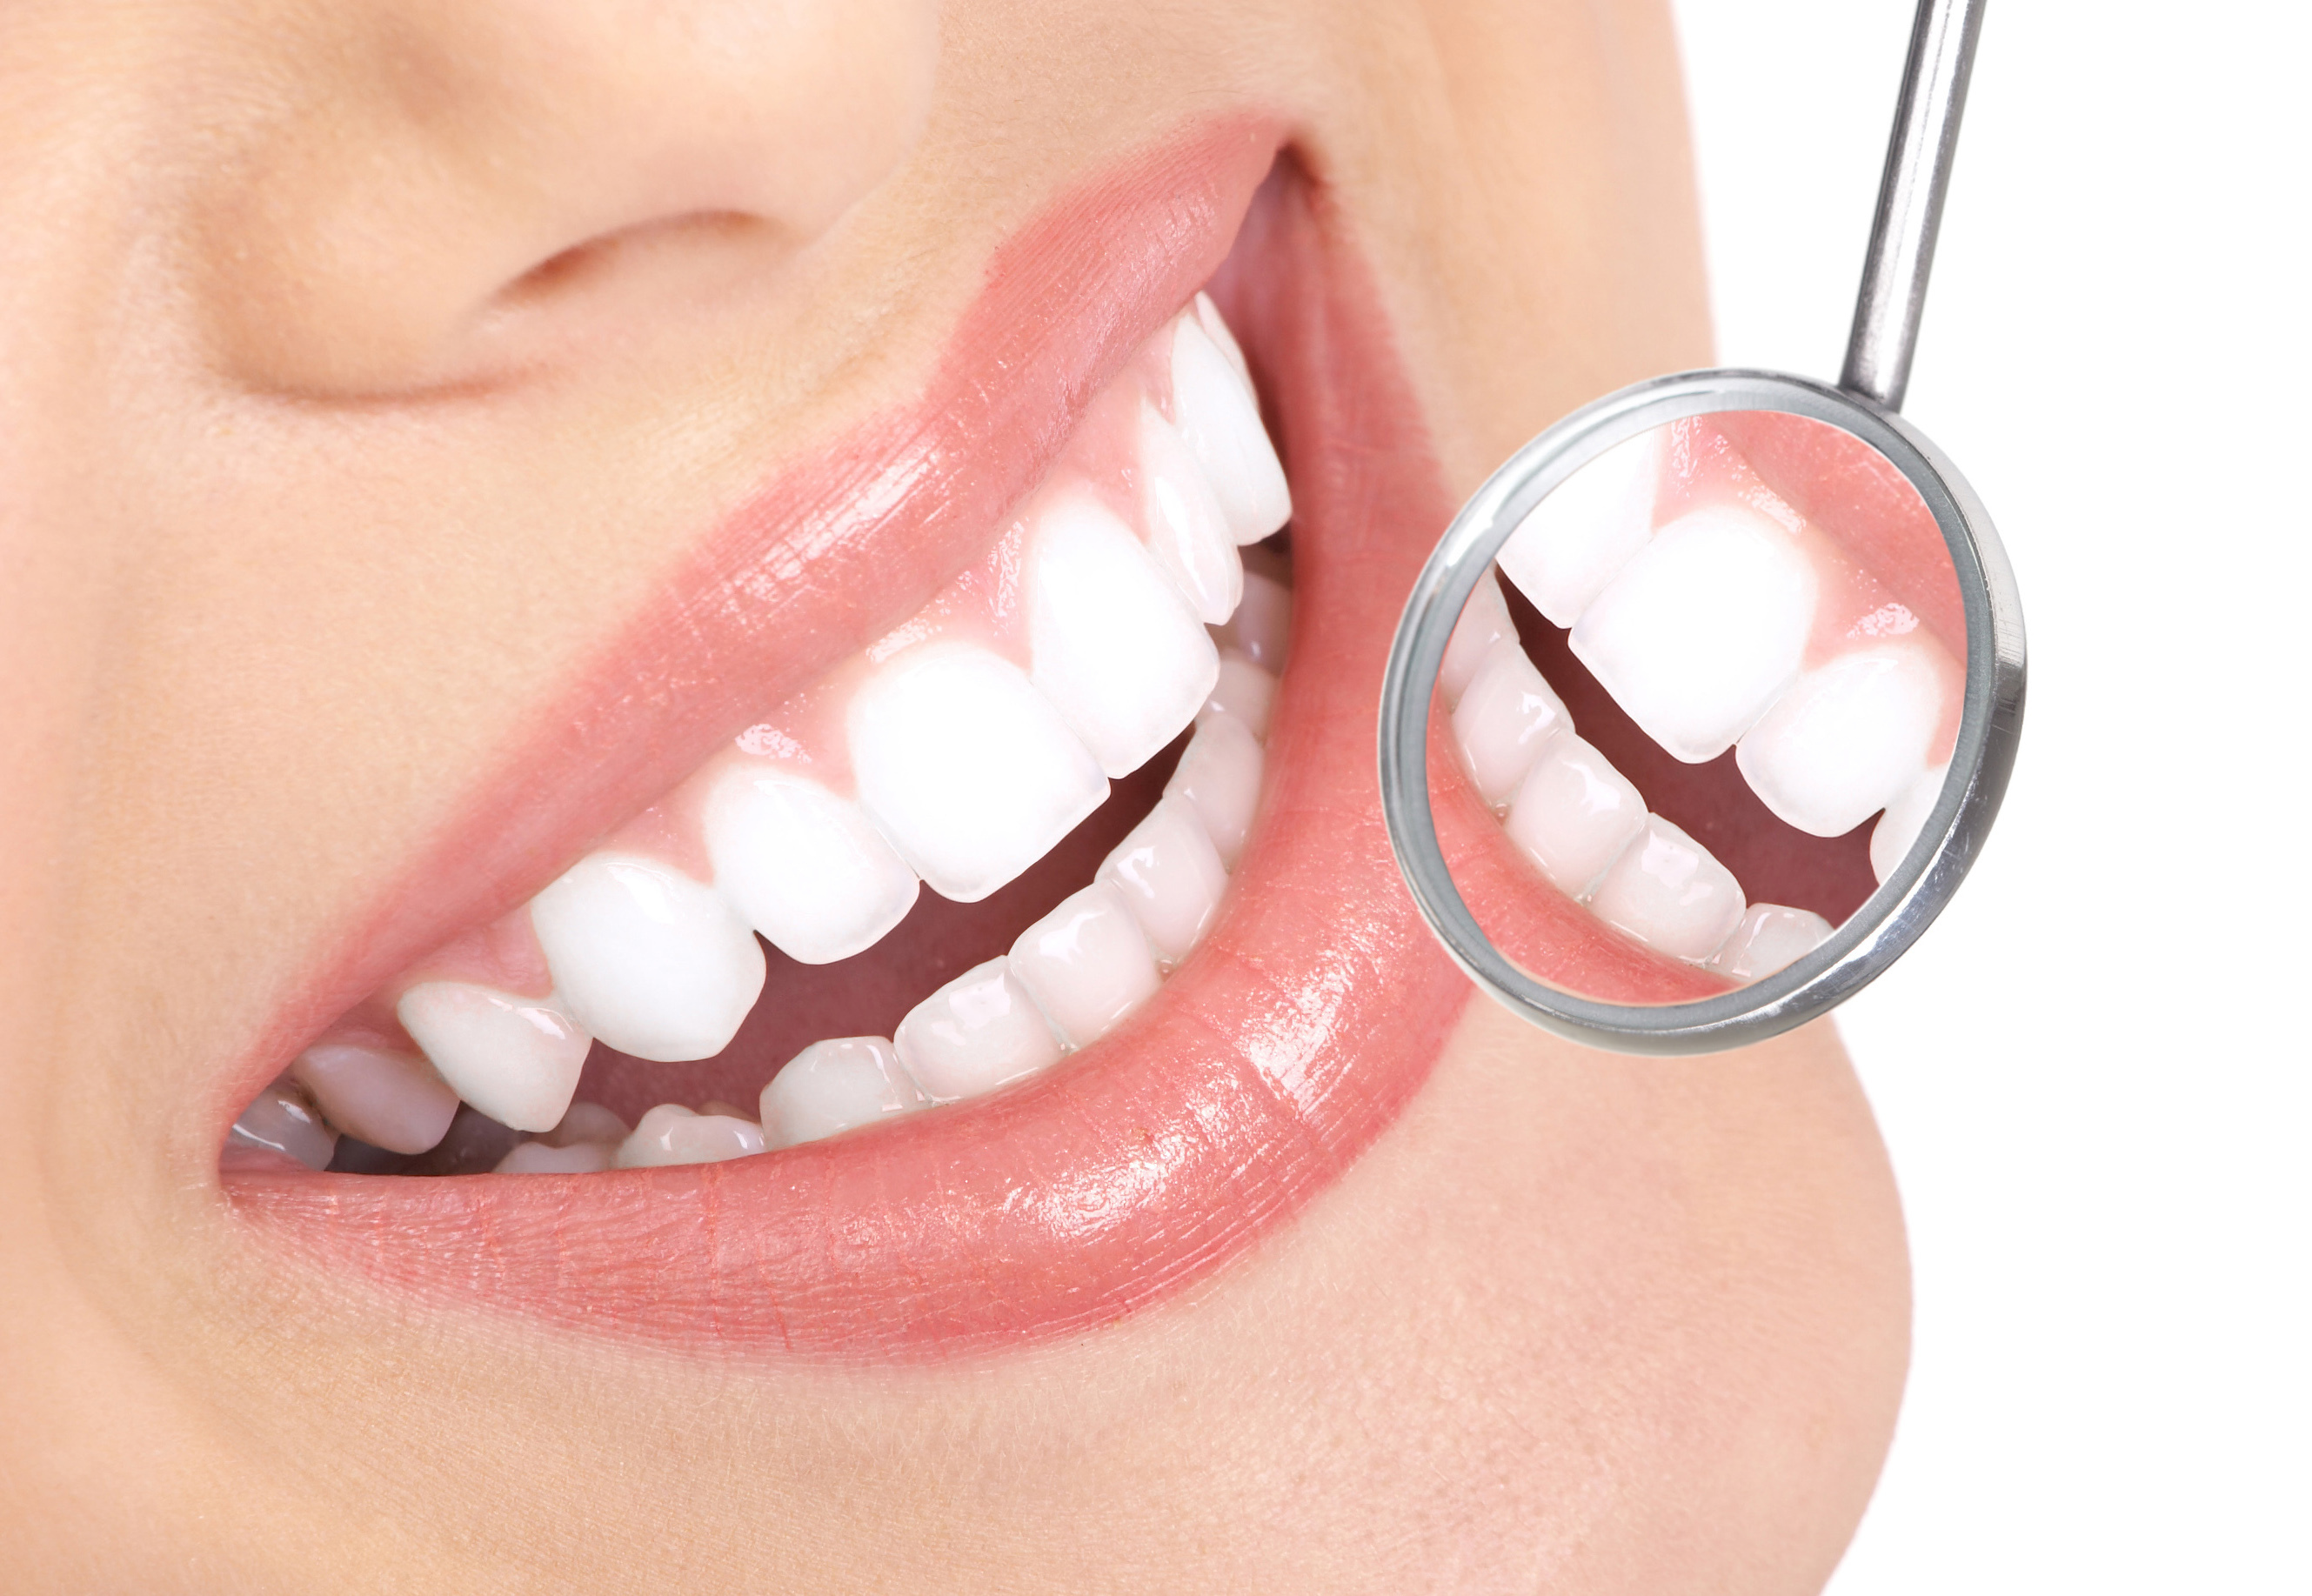 Walk-in Dental Clinic Are Equally Significant And Reliable